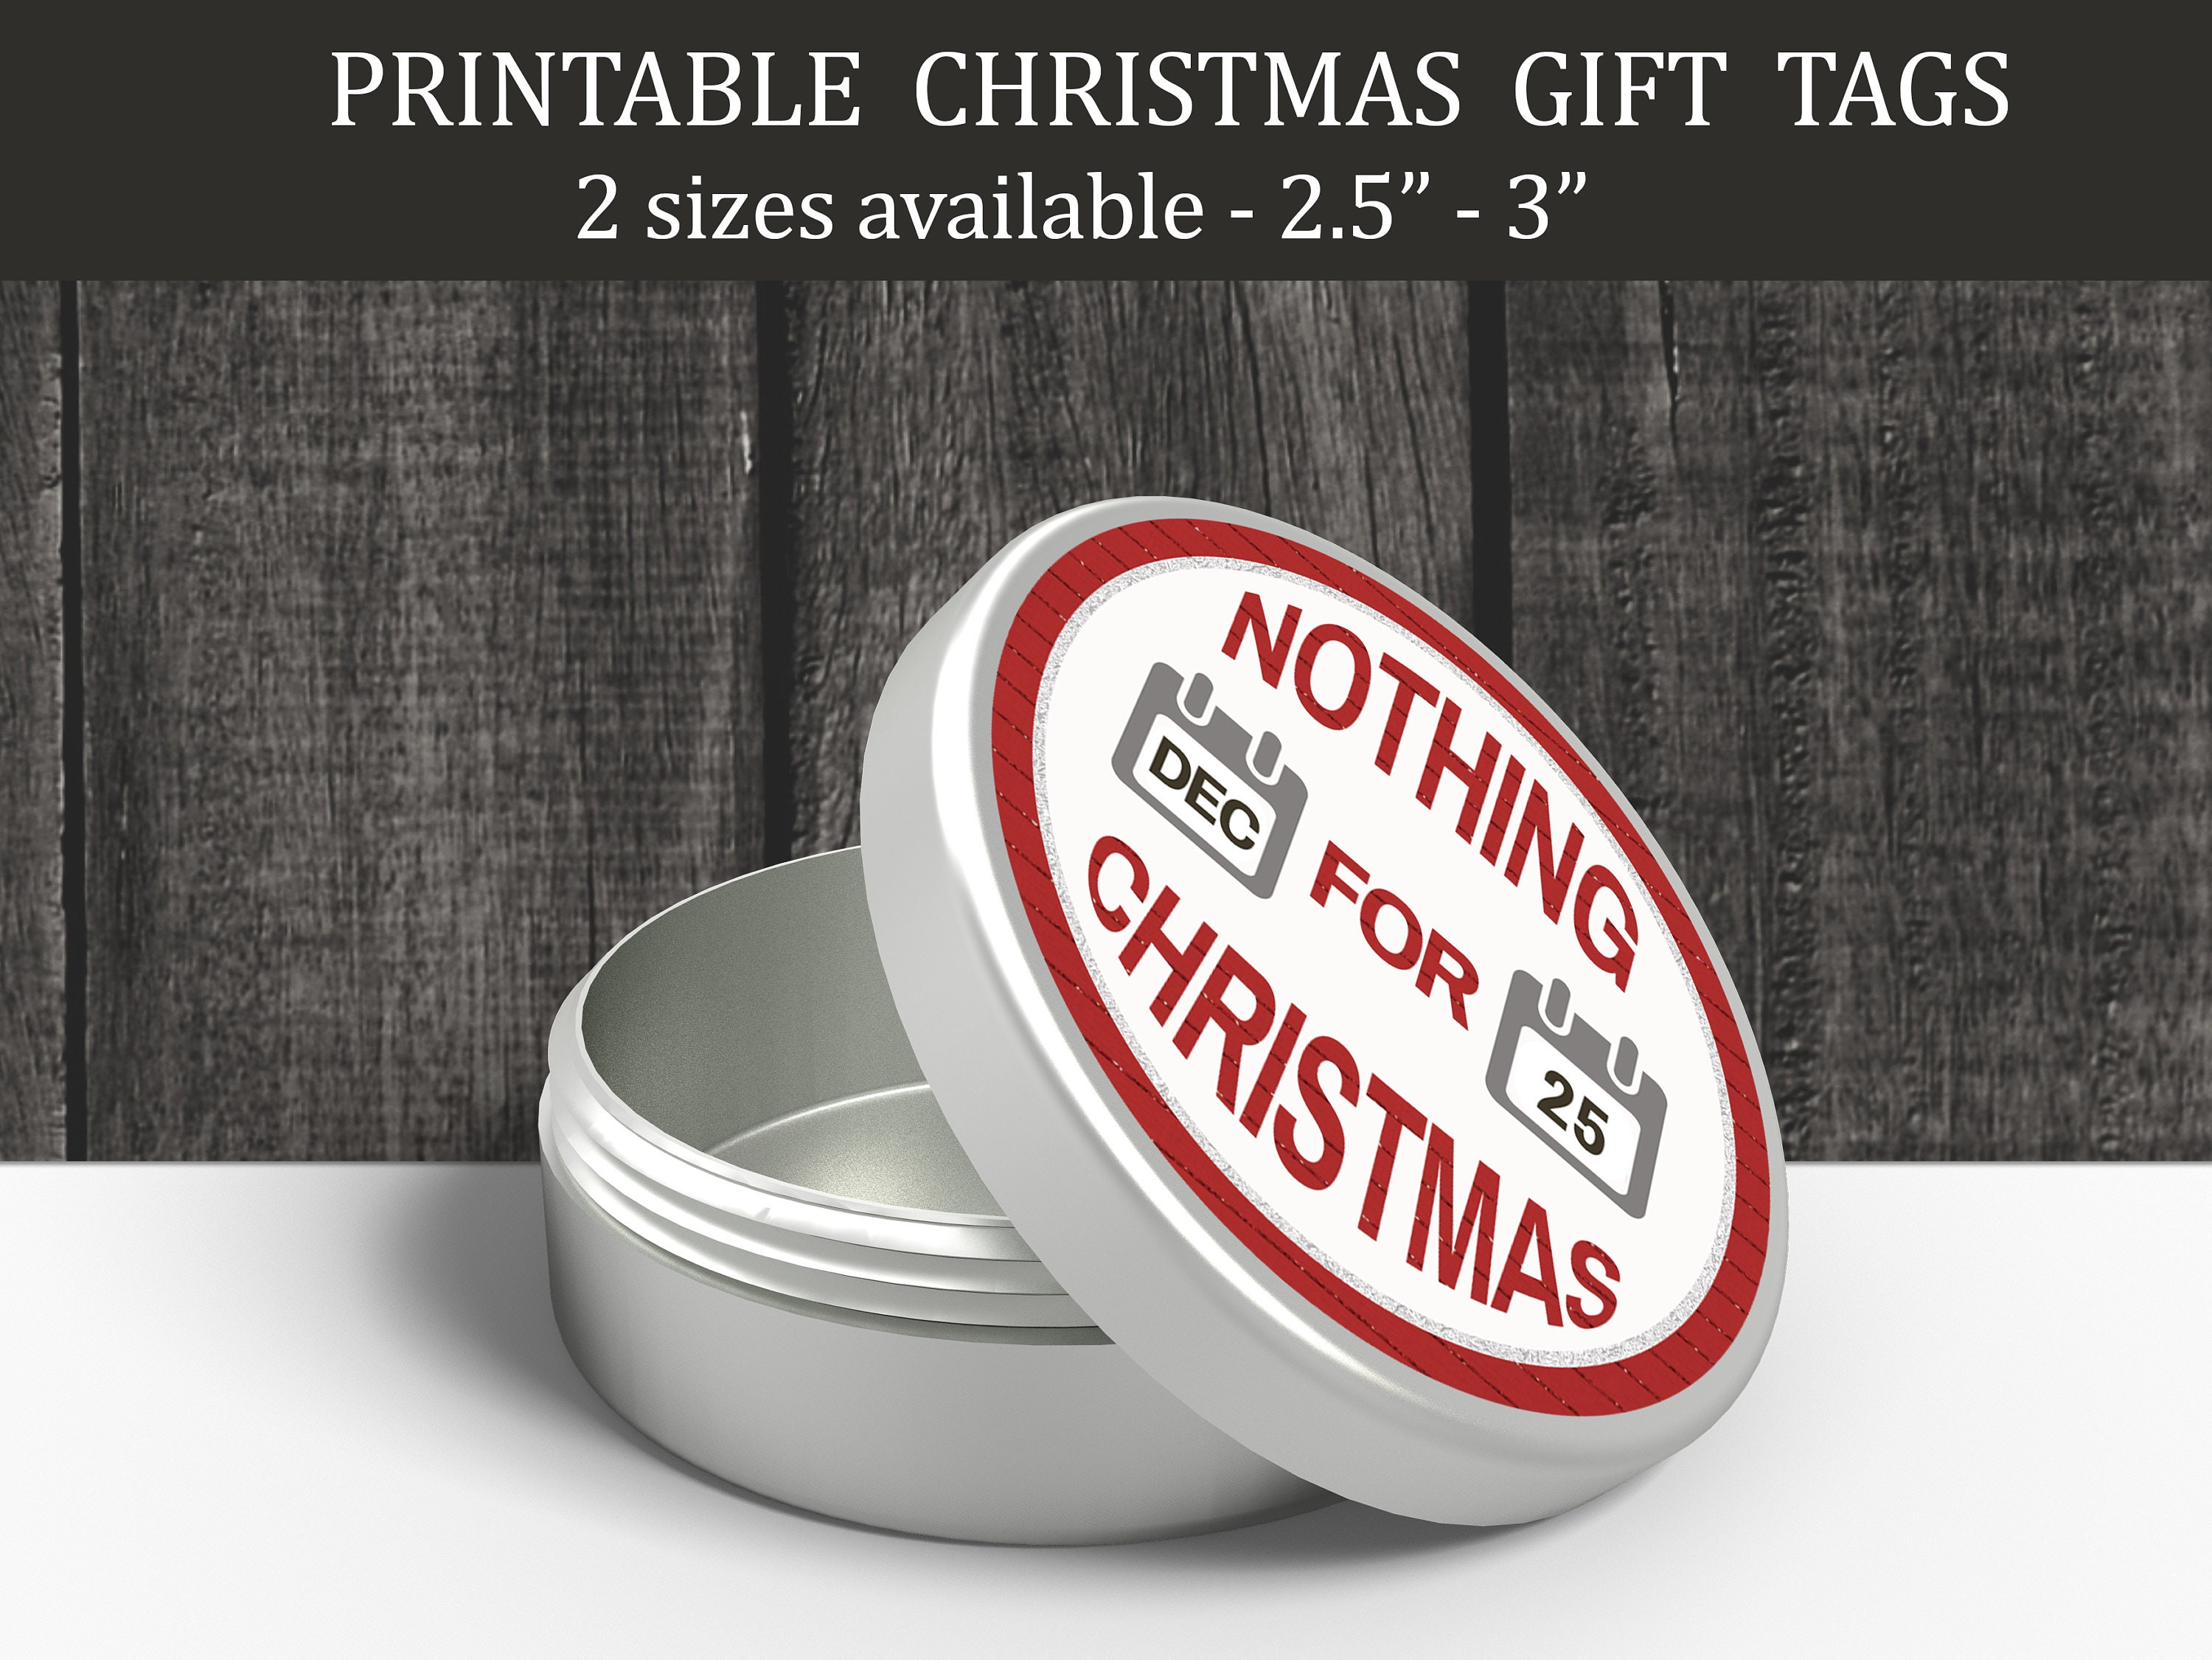 Funny Nothing For Christmas Printable Round Gift Tags   Etsy